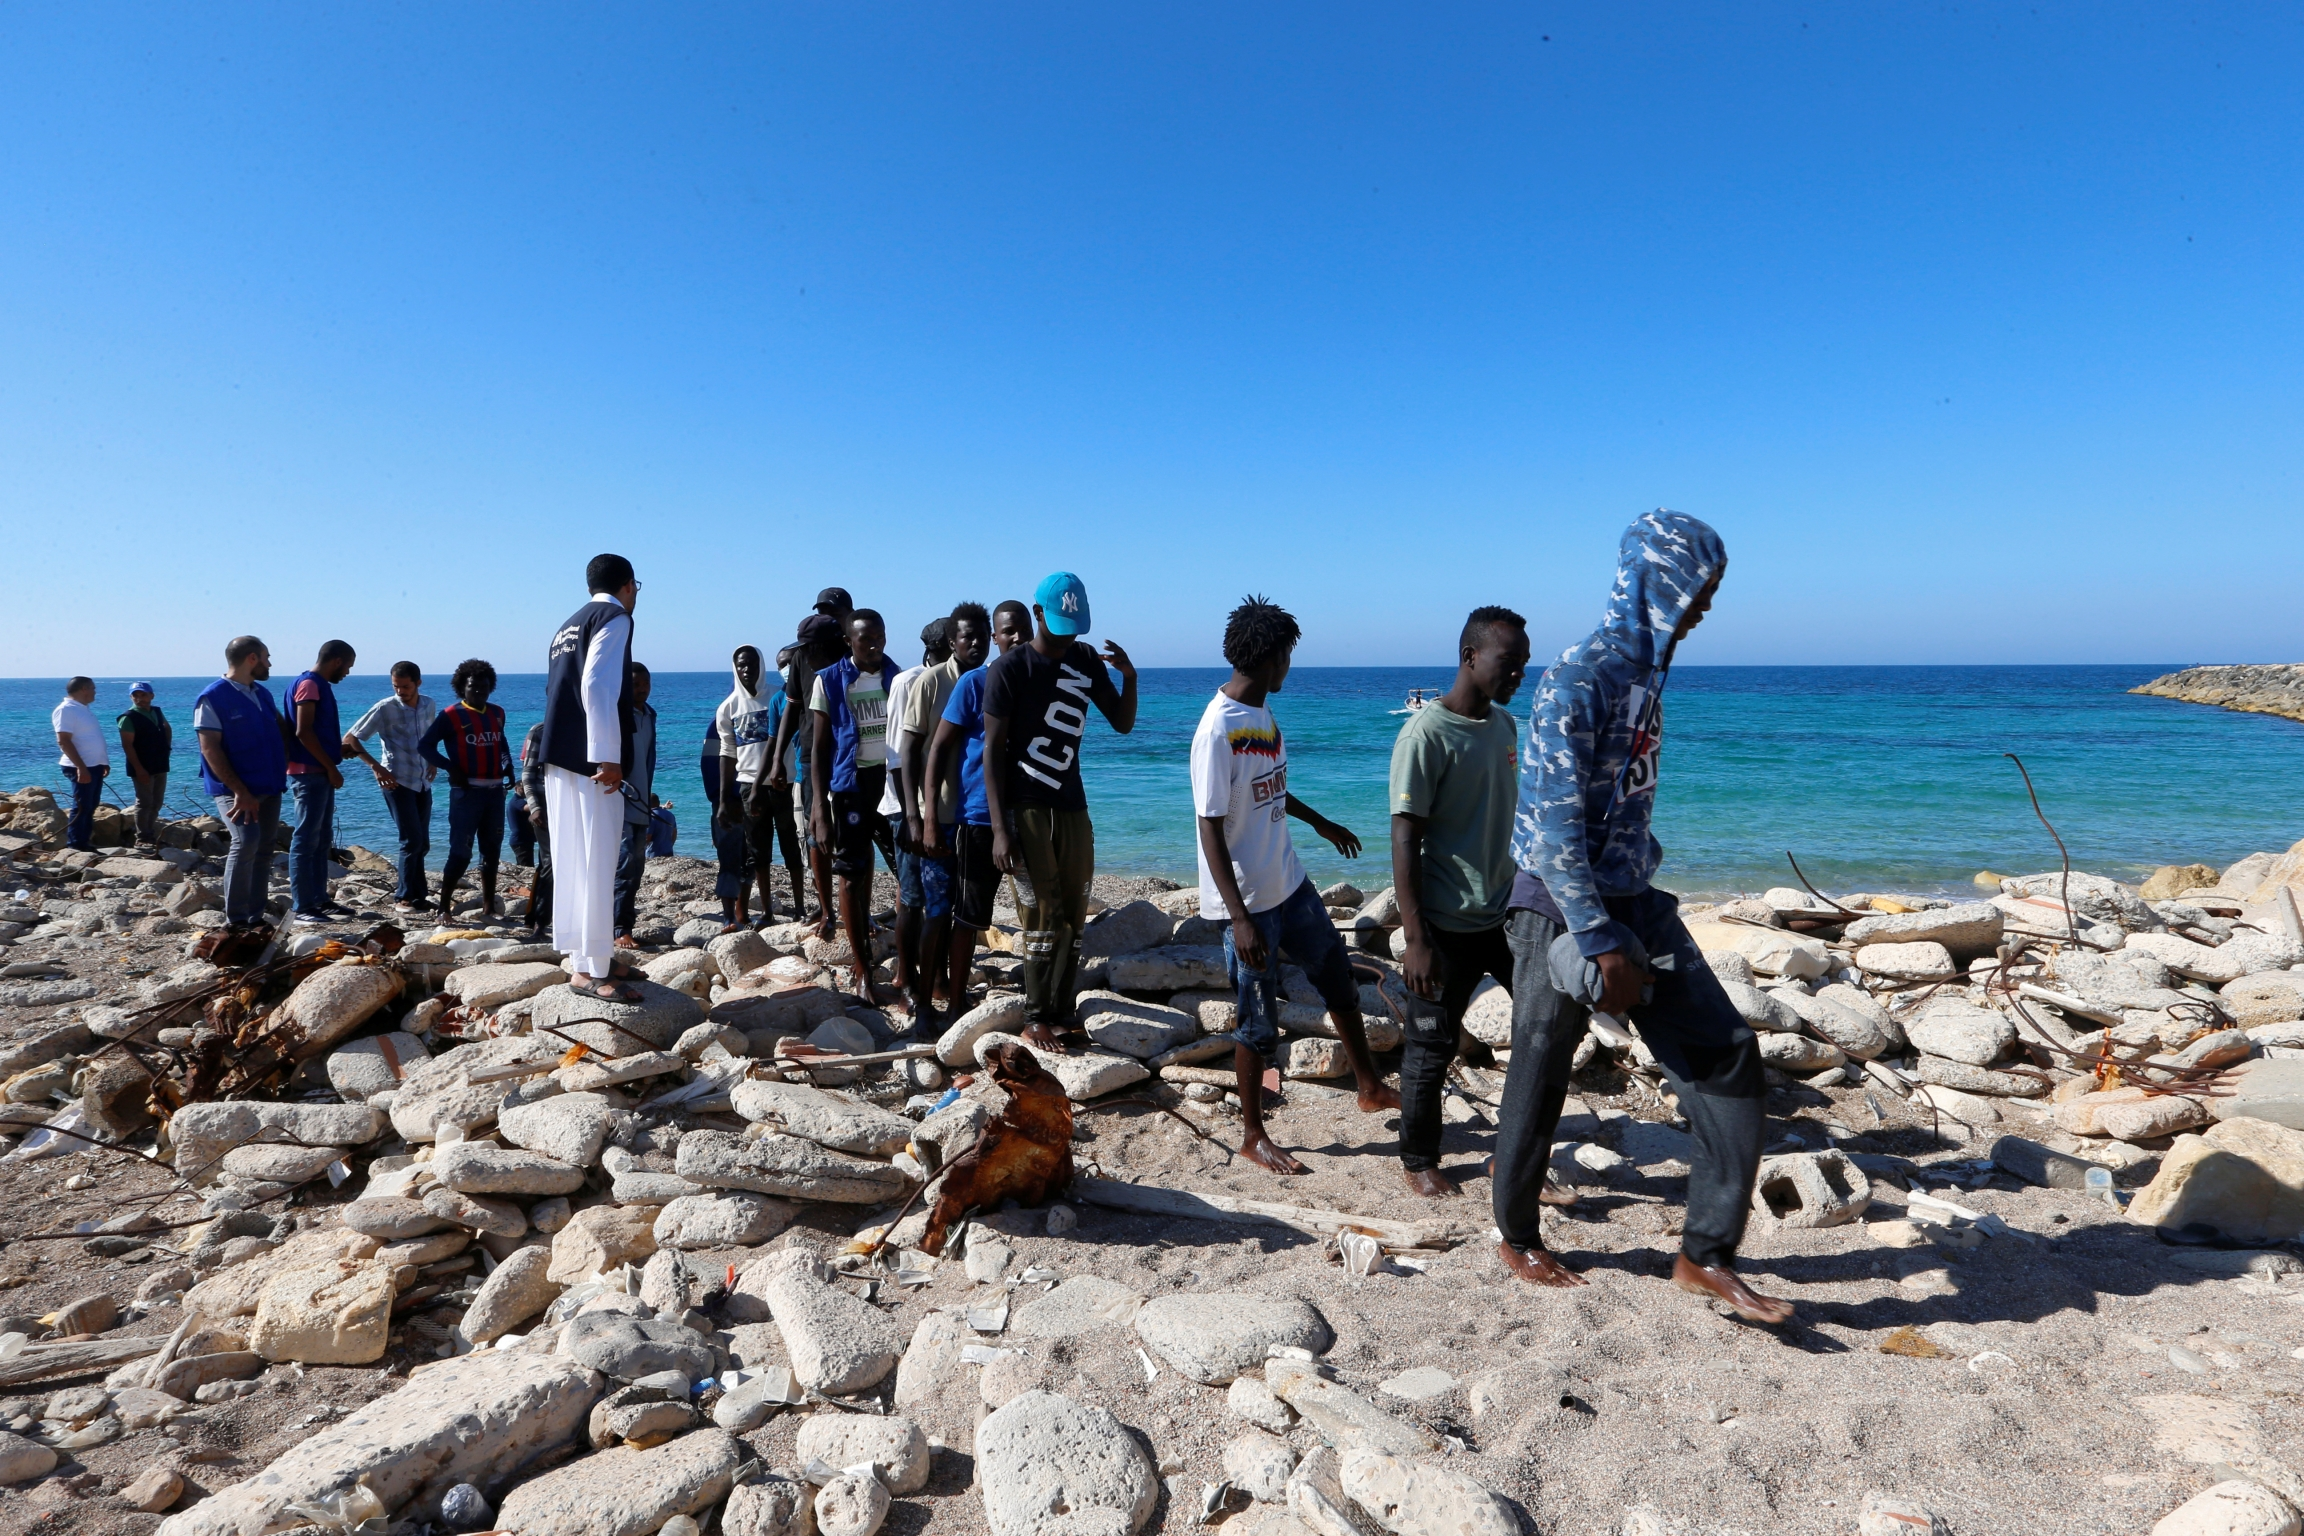 African migrants rescued by Libya coast guard at seashore